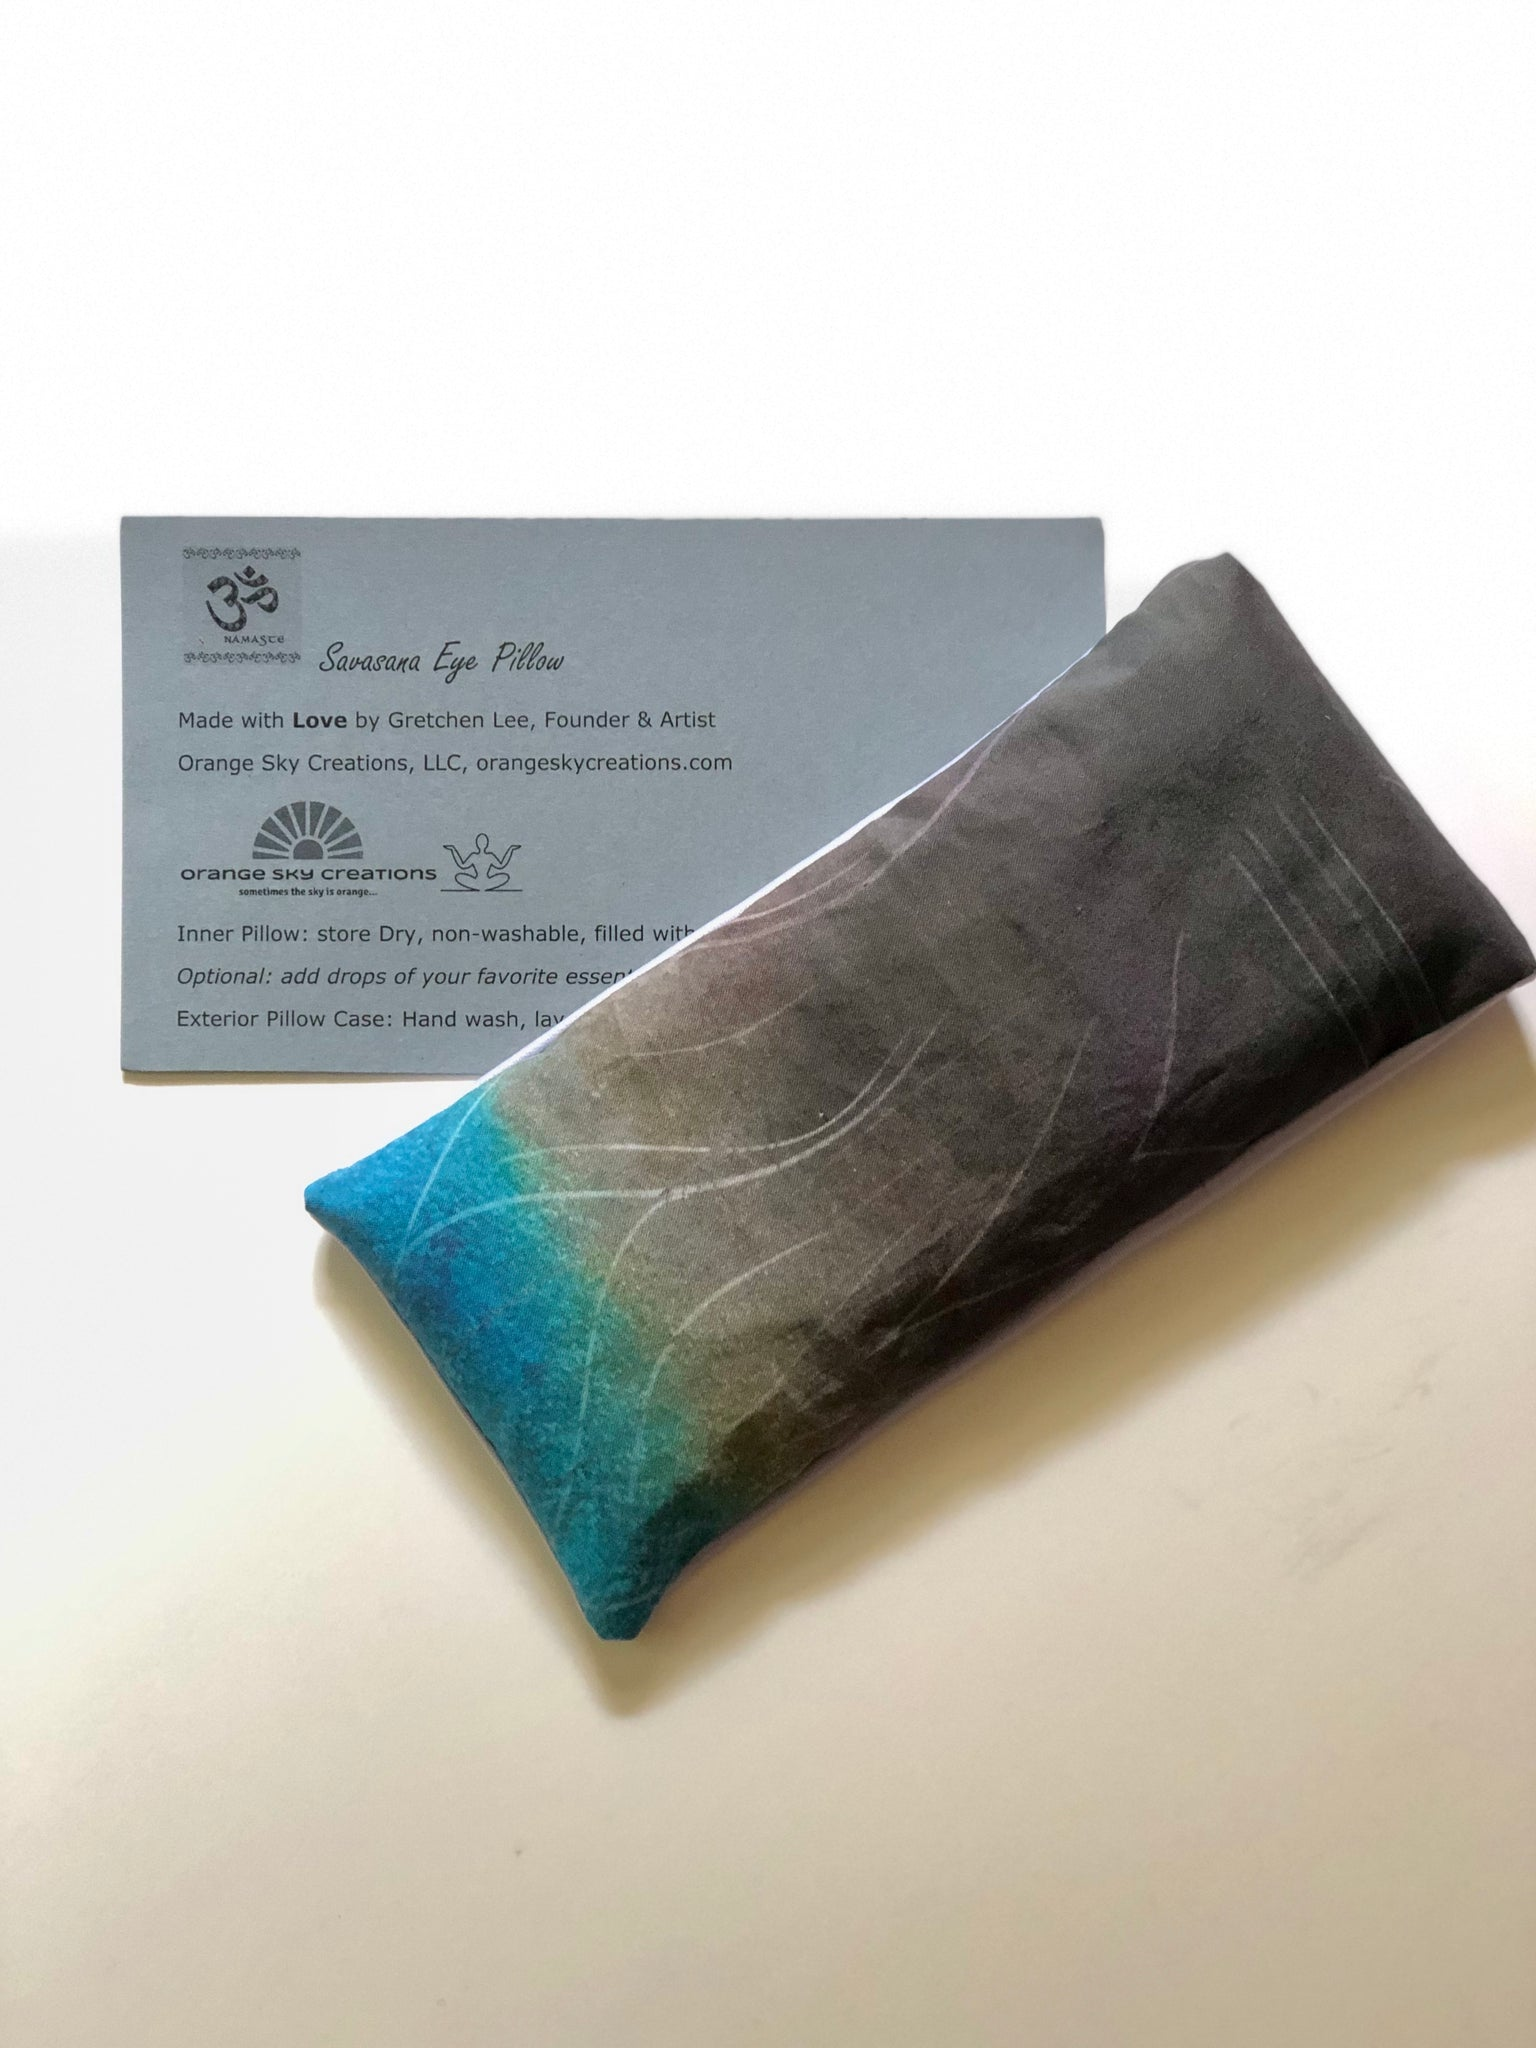 Be Graceful ~ Savasana Eye Pillow